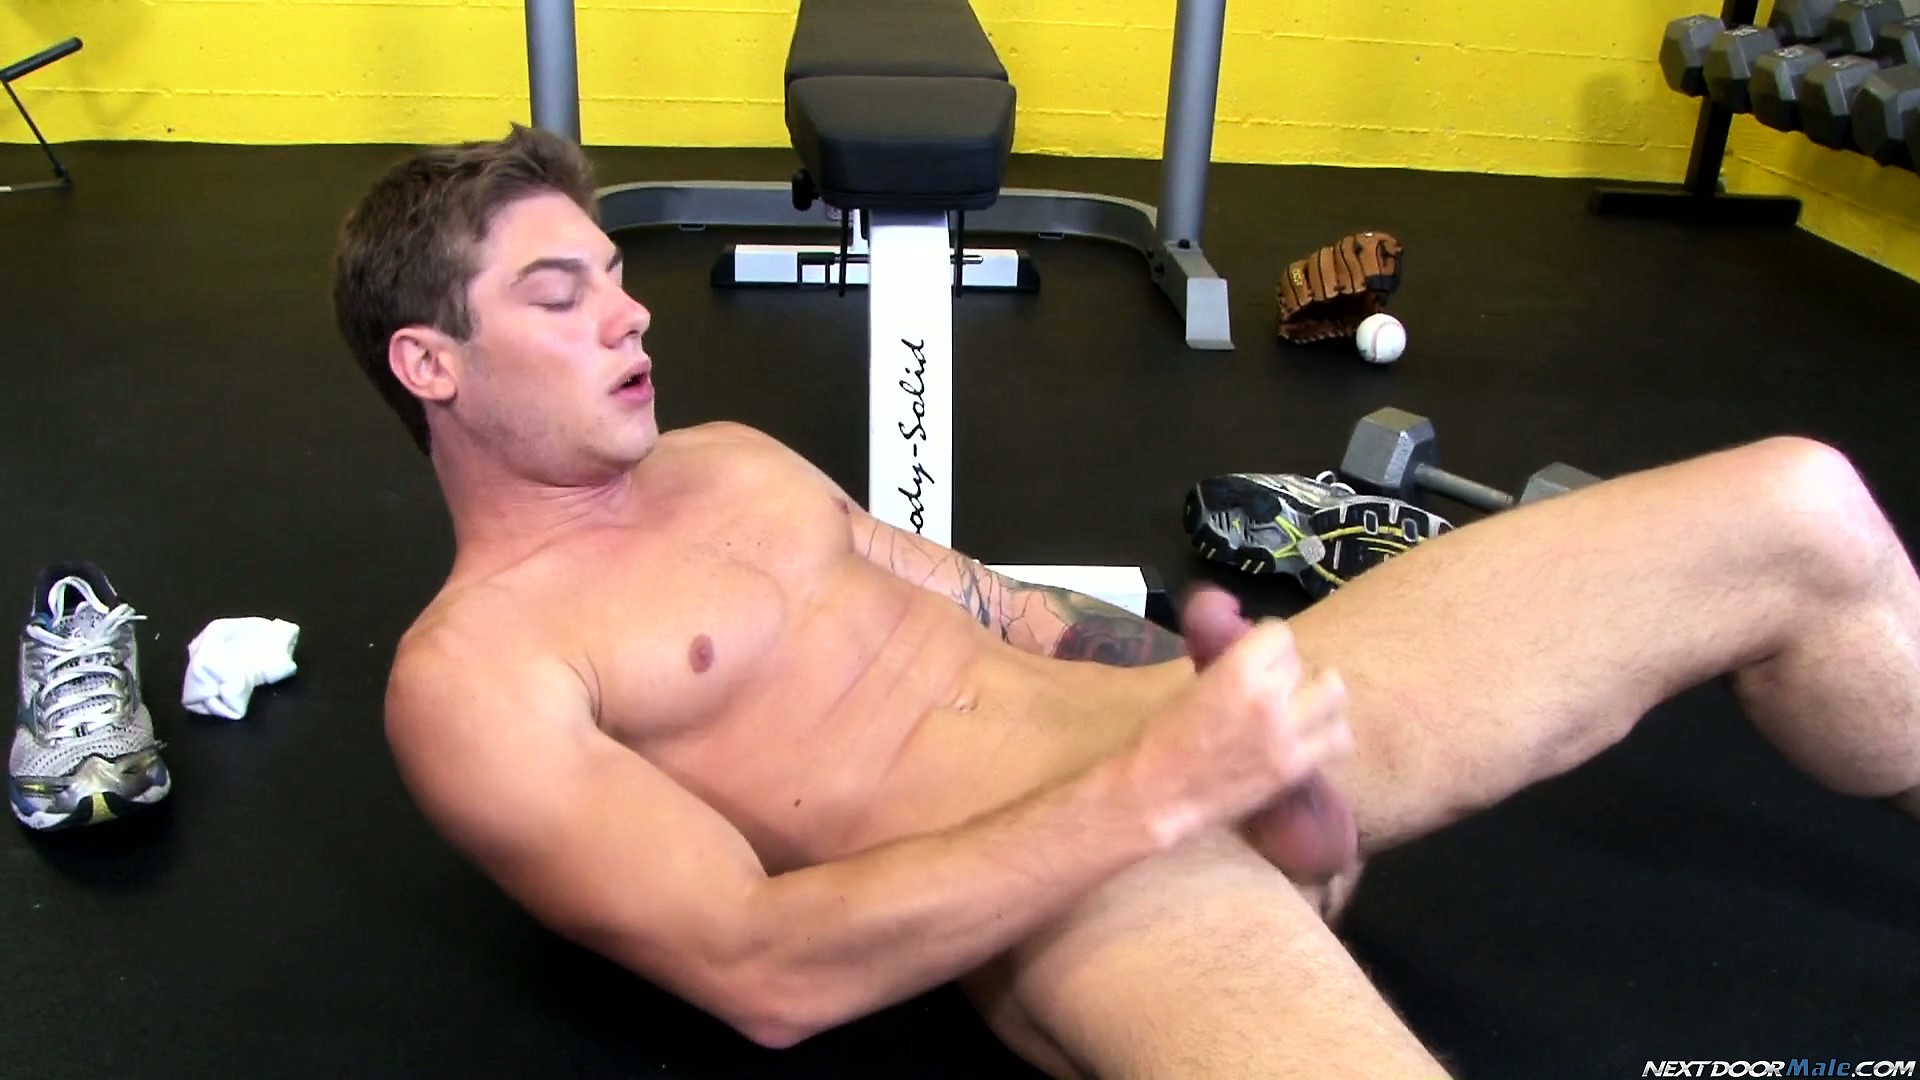 Porno Video of Vance Lies On The Floor Jerking His Shaft Until He Reaches His Orgasm